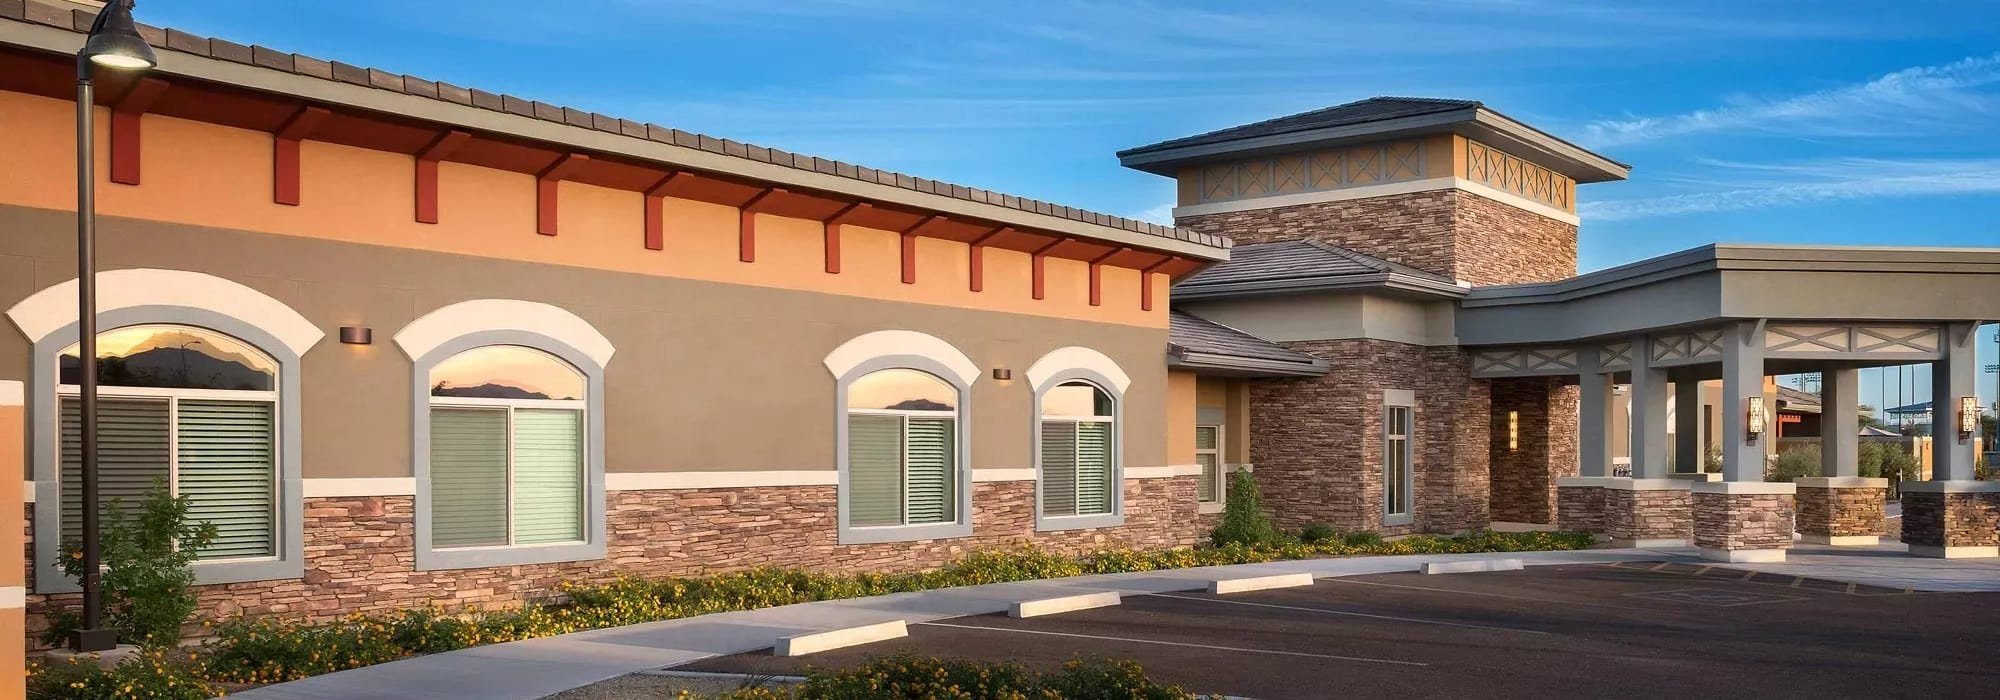 Learn about Our Story at Avenir Senior Living in Scottsdale, Arizona.